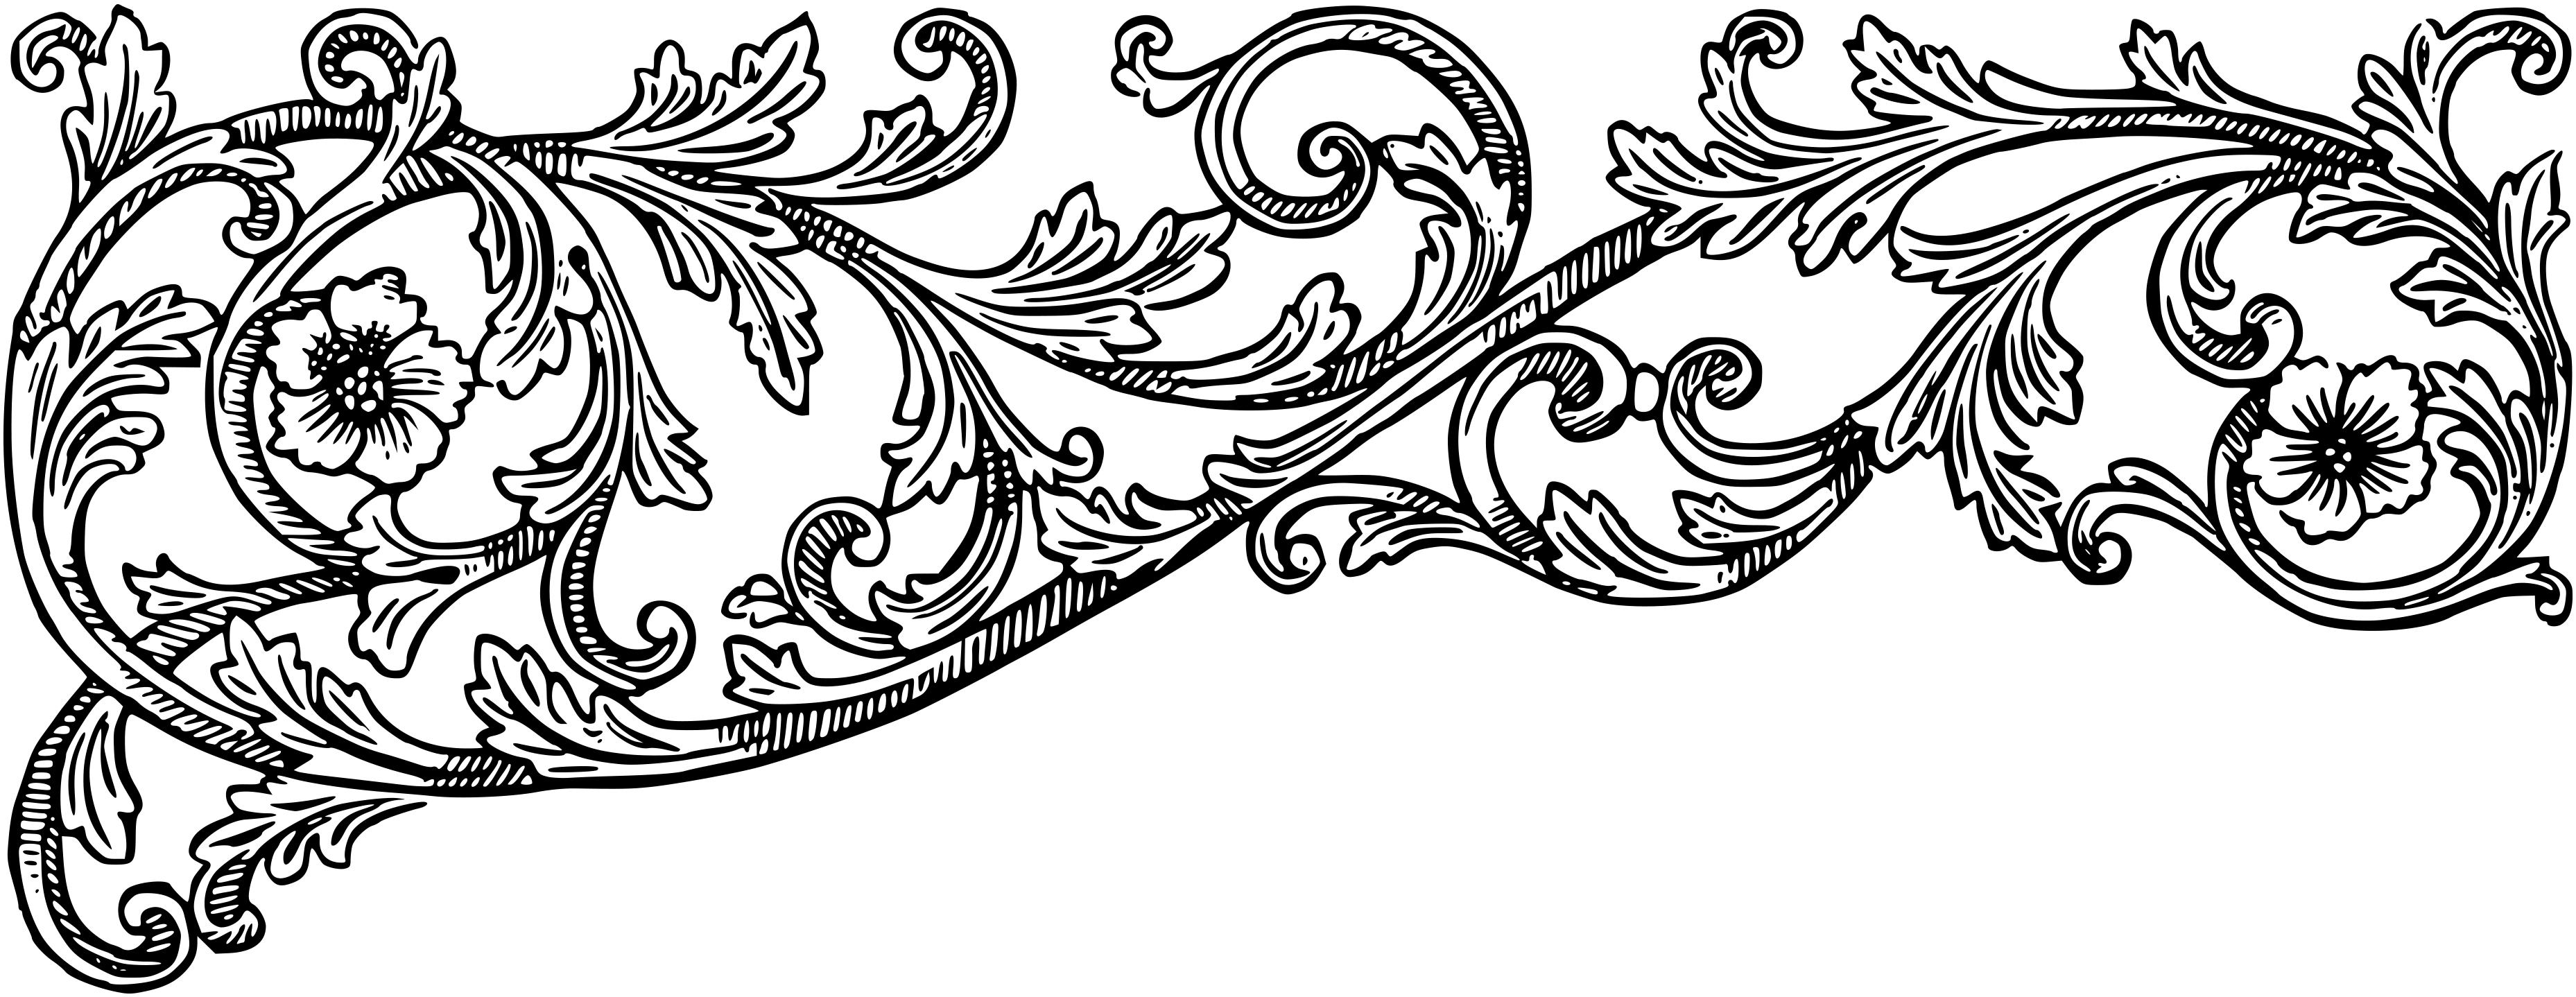 image freeuse download Royalty free images vintage. Western flourish clipart